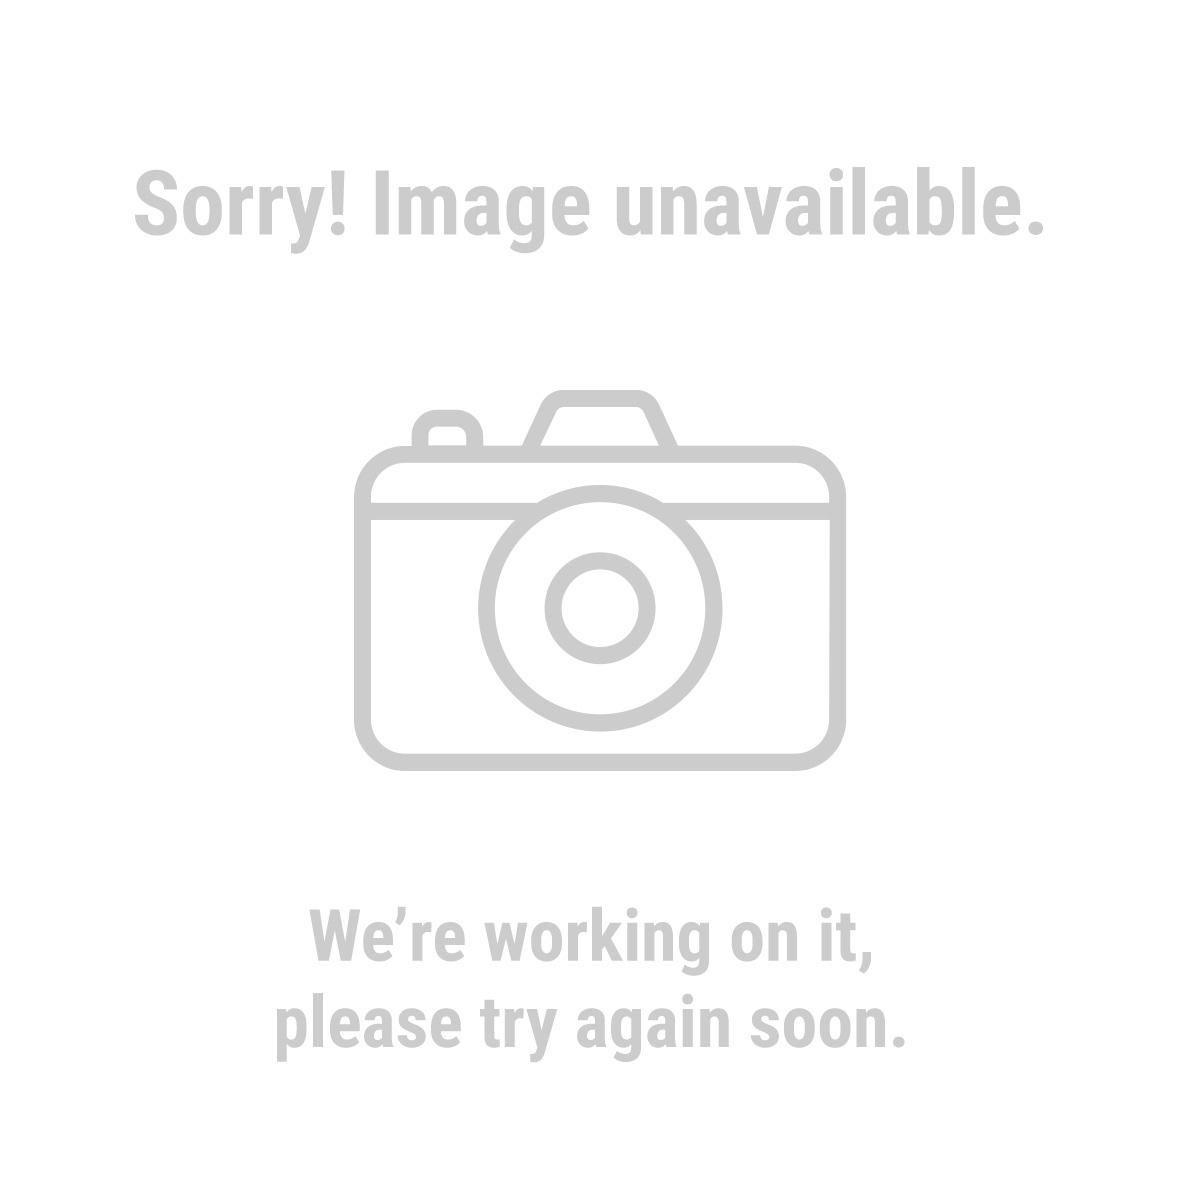 Bunker Hill Security 97081 0.53 Cubic Ft. Digital Wall Safe